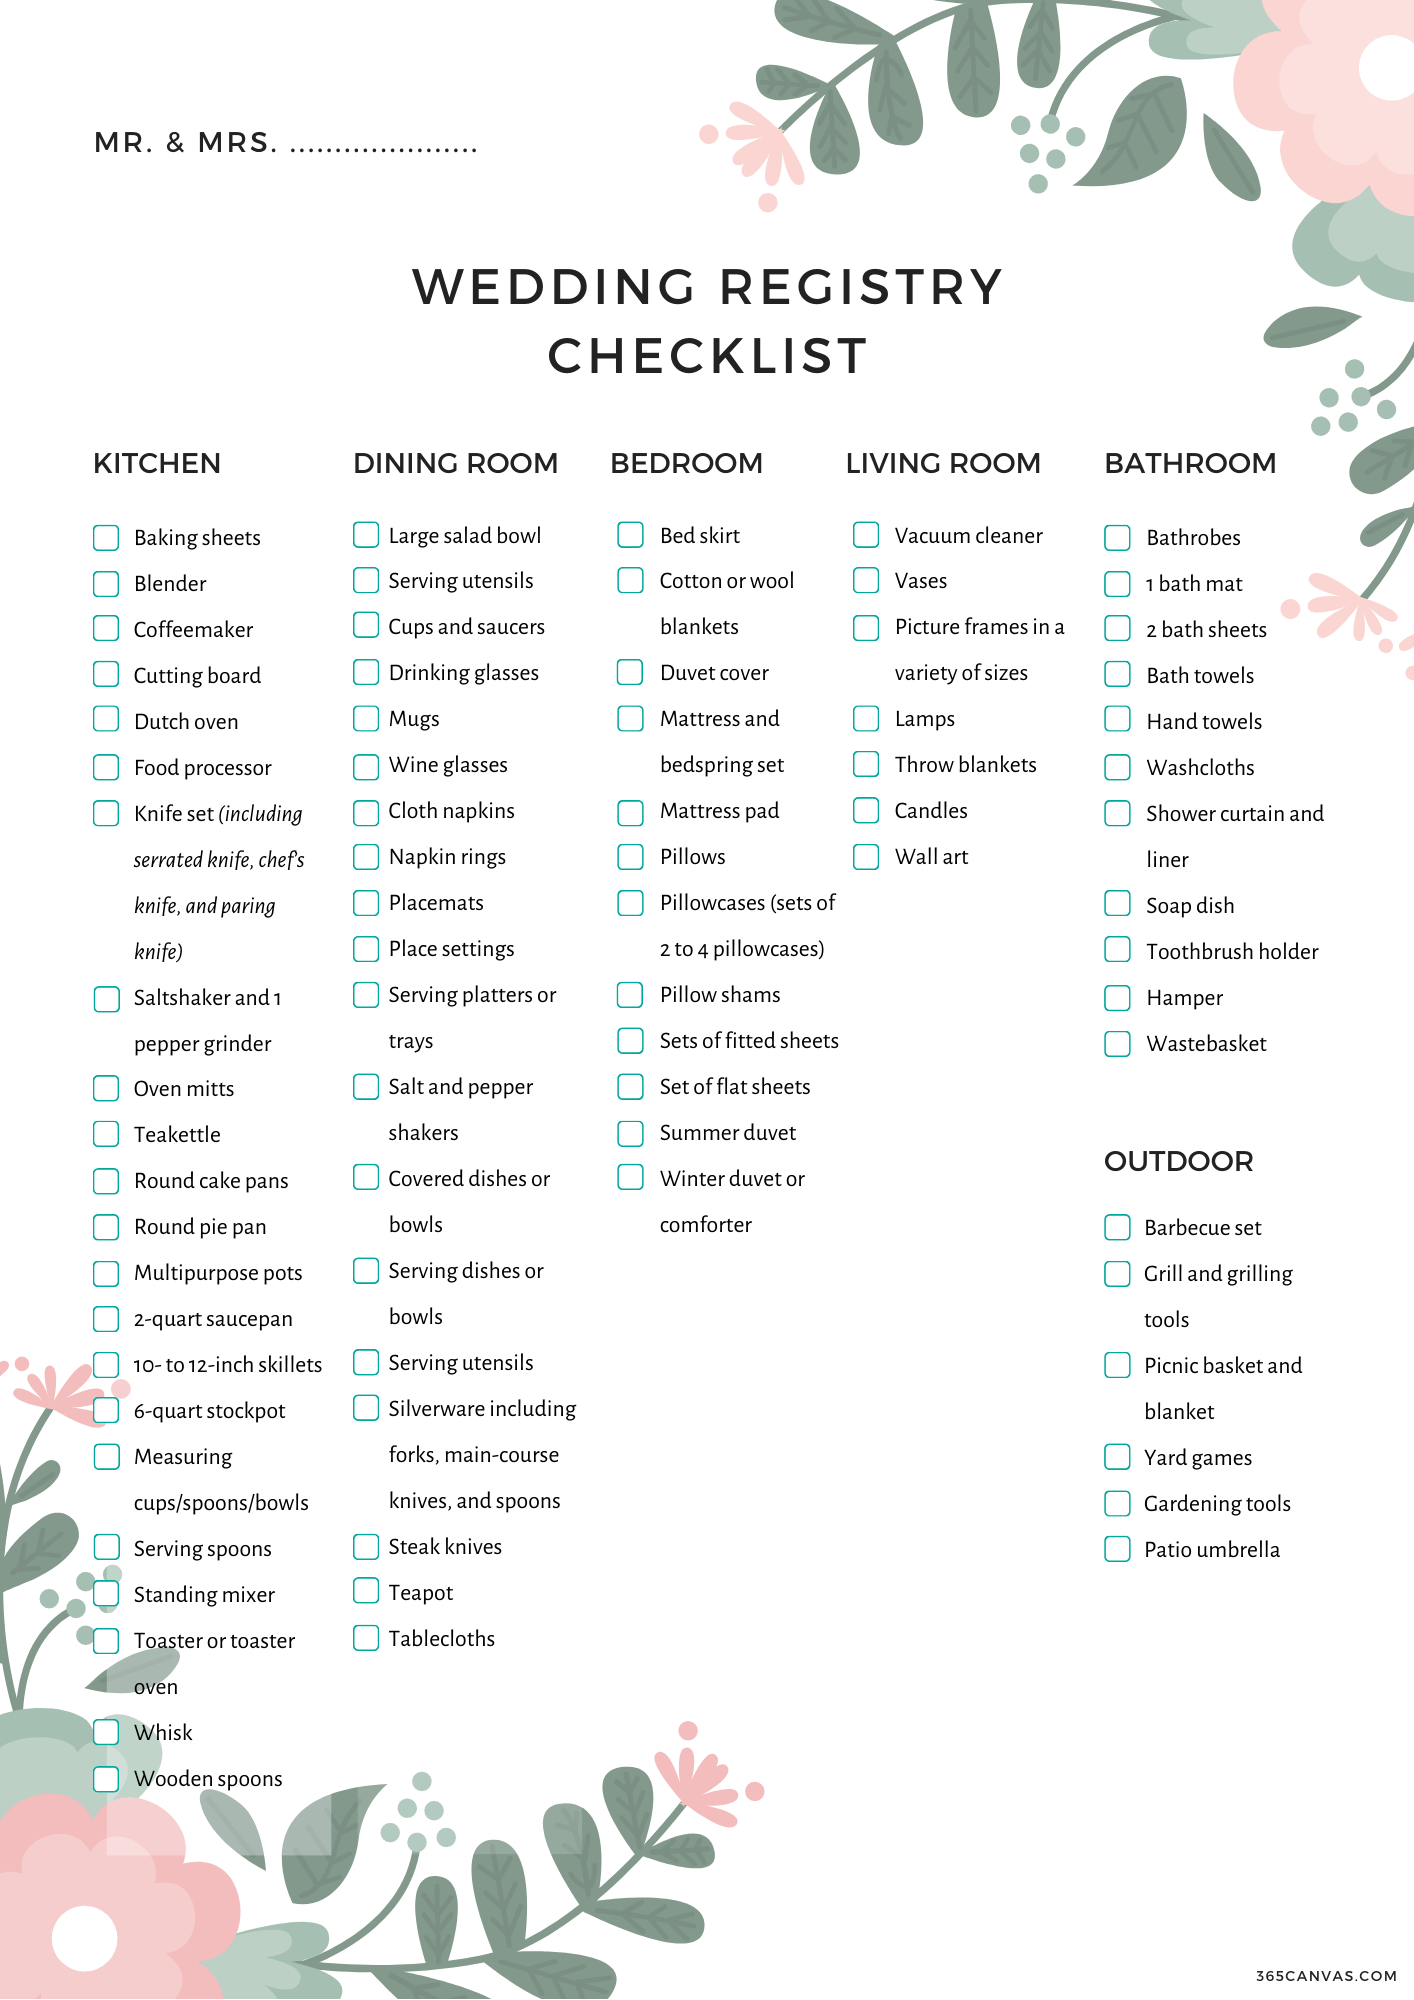 the complete wedding registry checklist  free printable